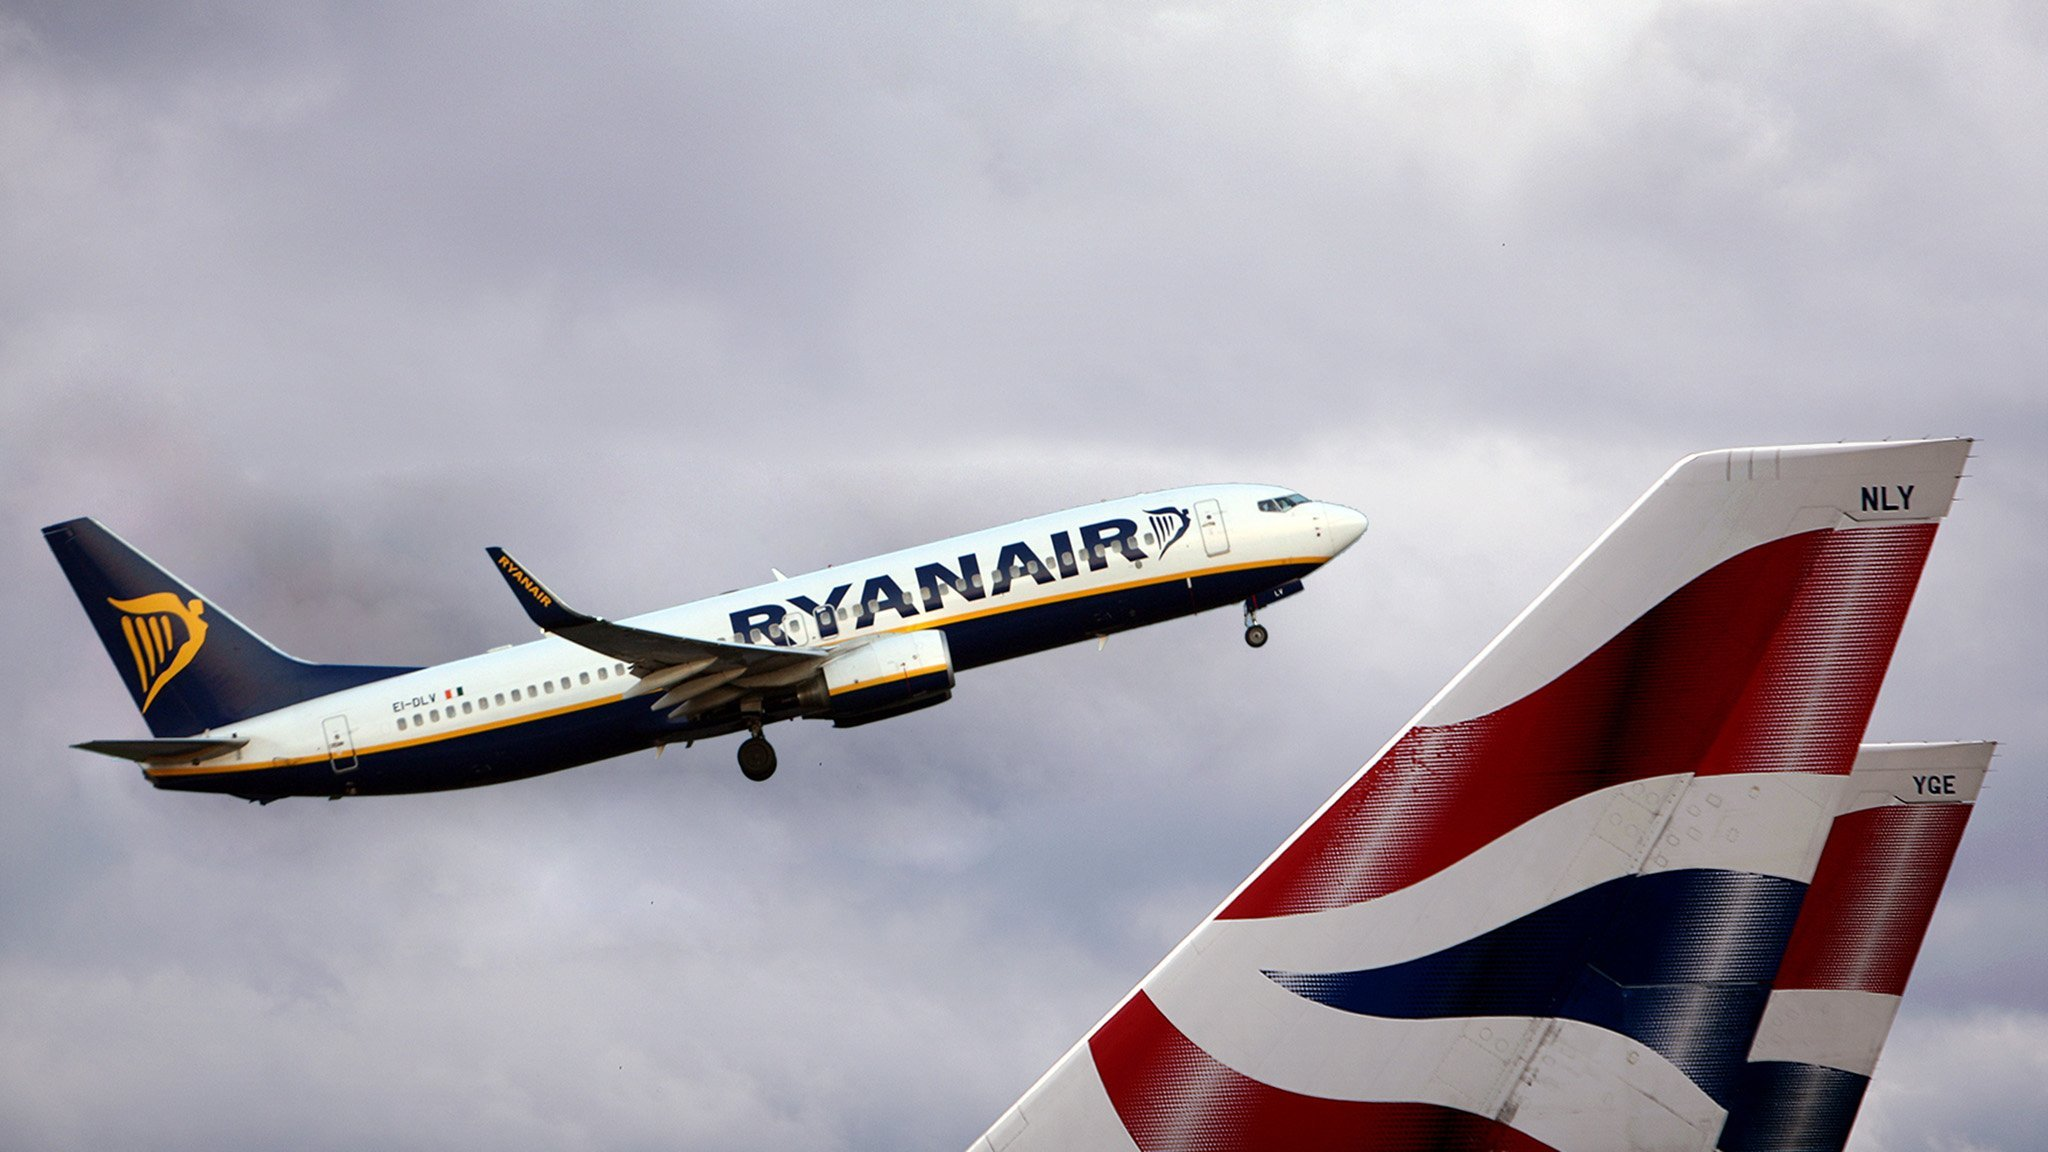 ff28ed2e b885 11e5 b151 8e15c9a029fb - El Bullying de Ryanair hacia British Airways